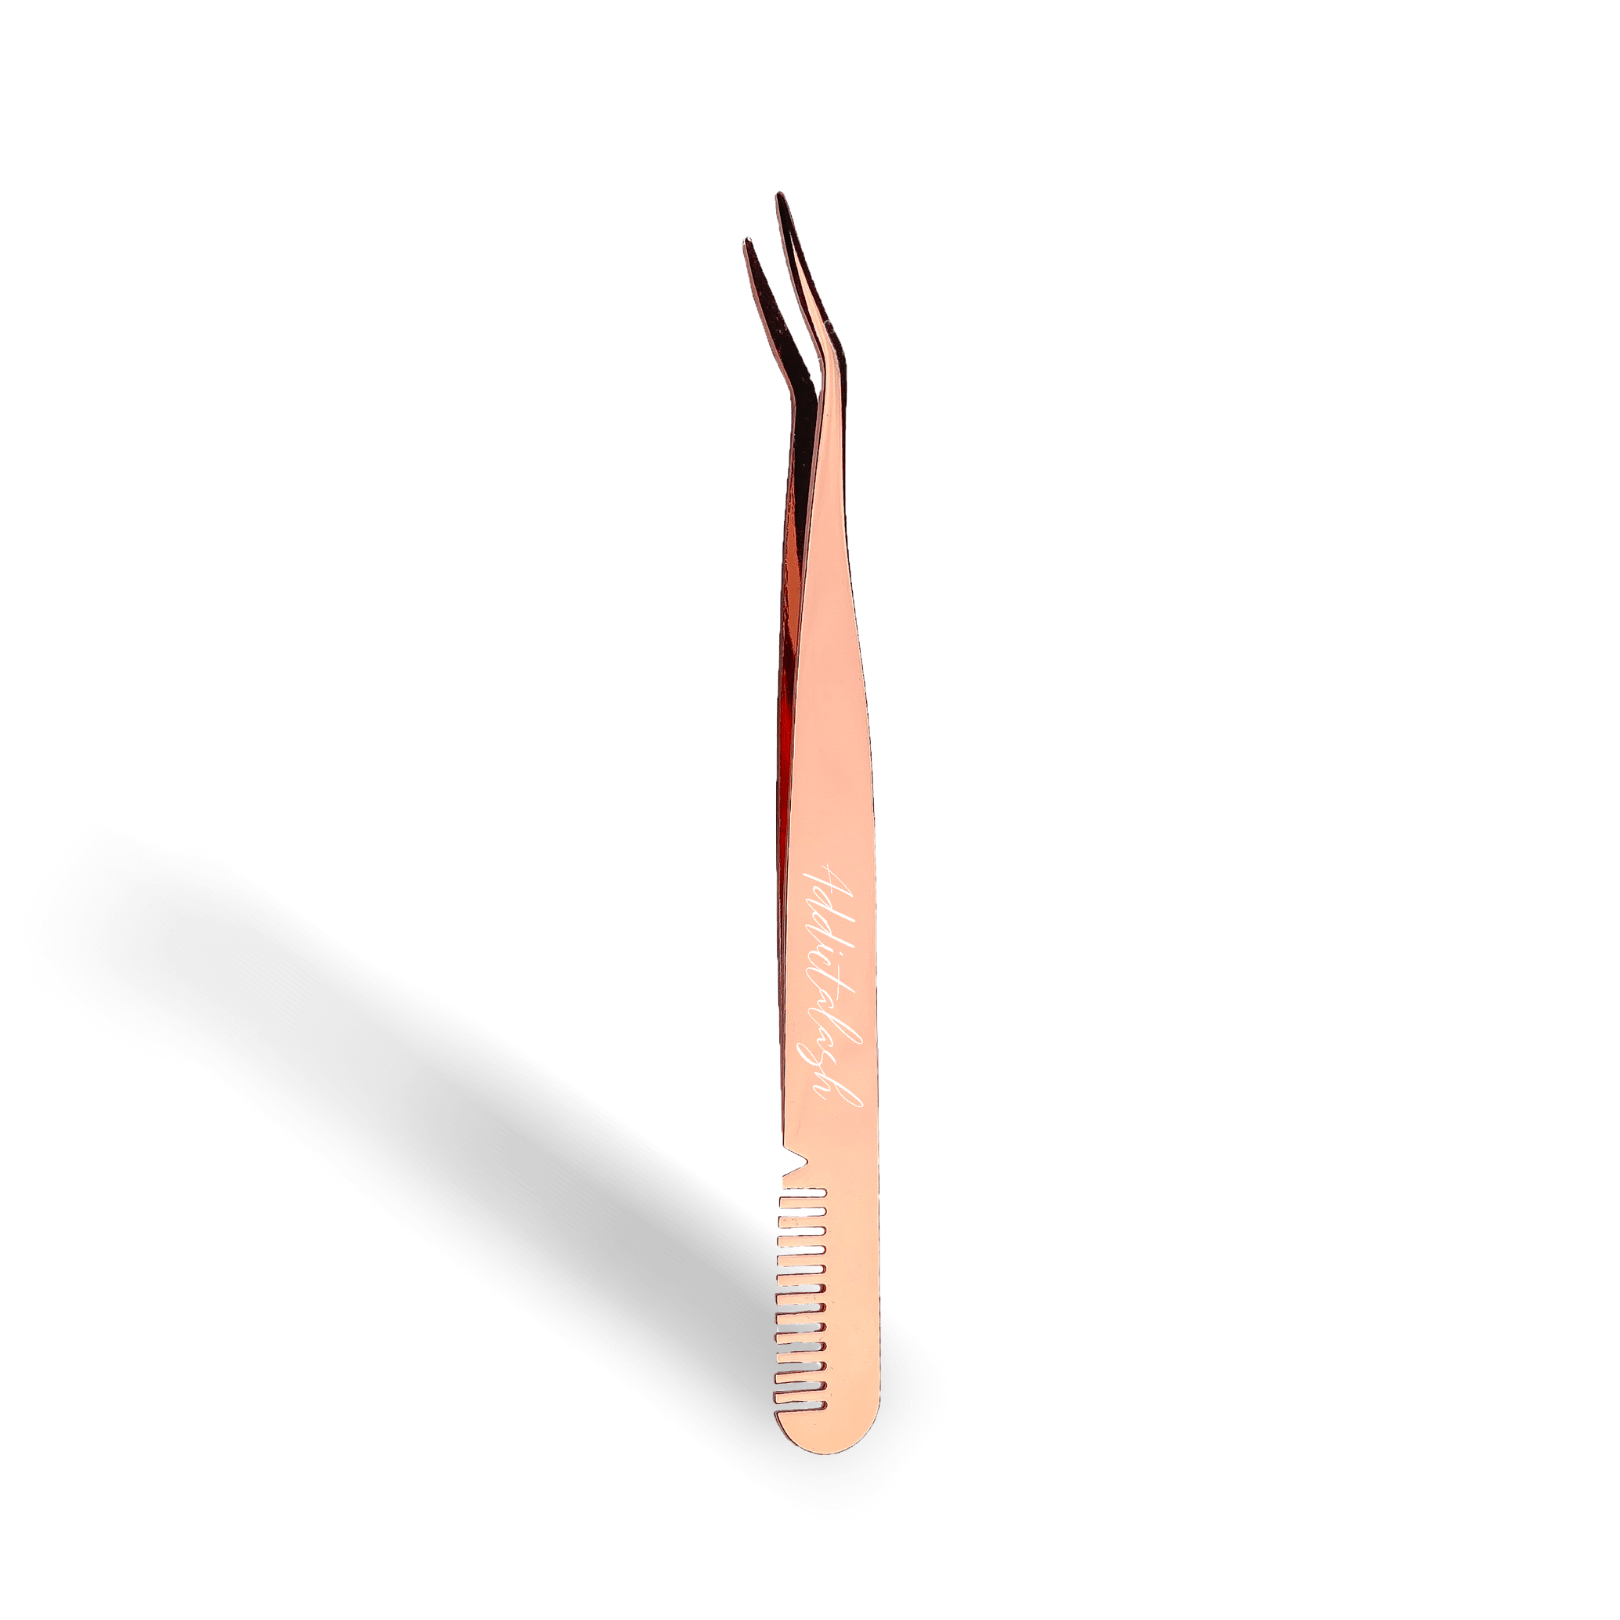 Lash applicator tweezer rose gold comb